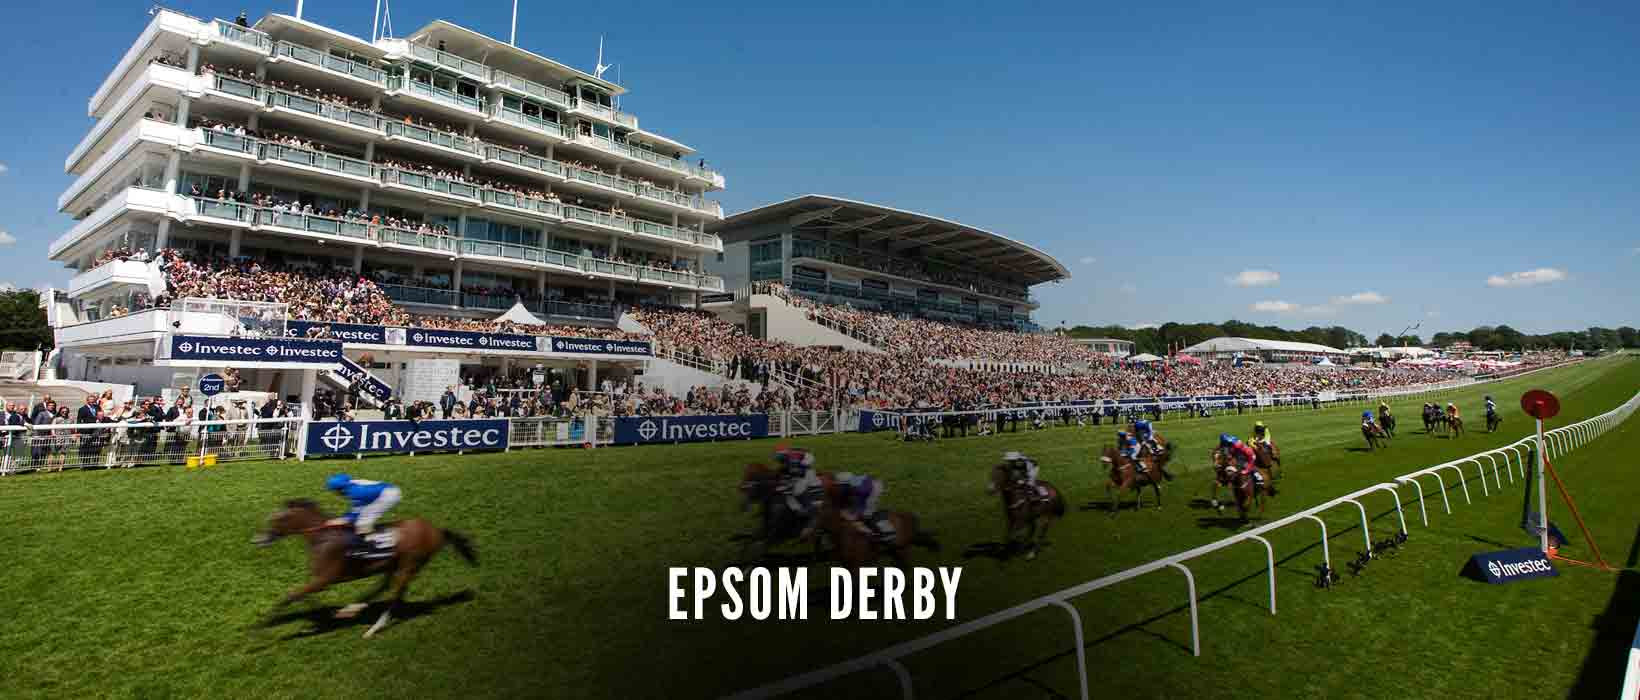 We tip the Epsom Derby